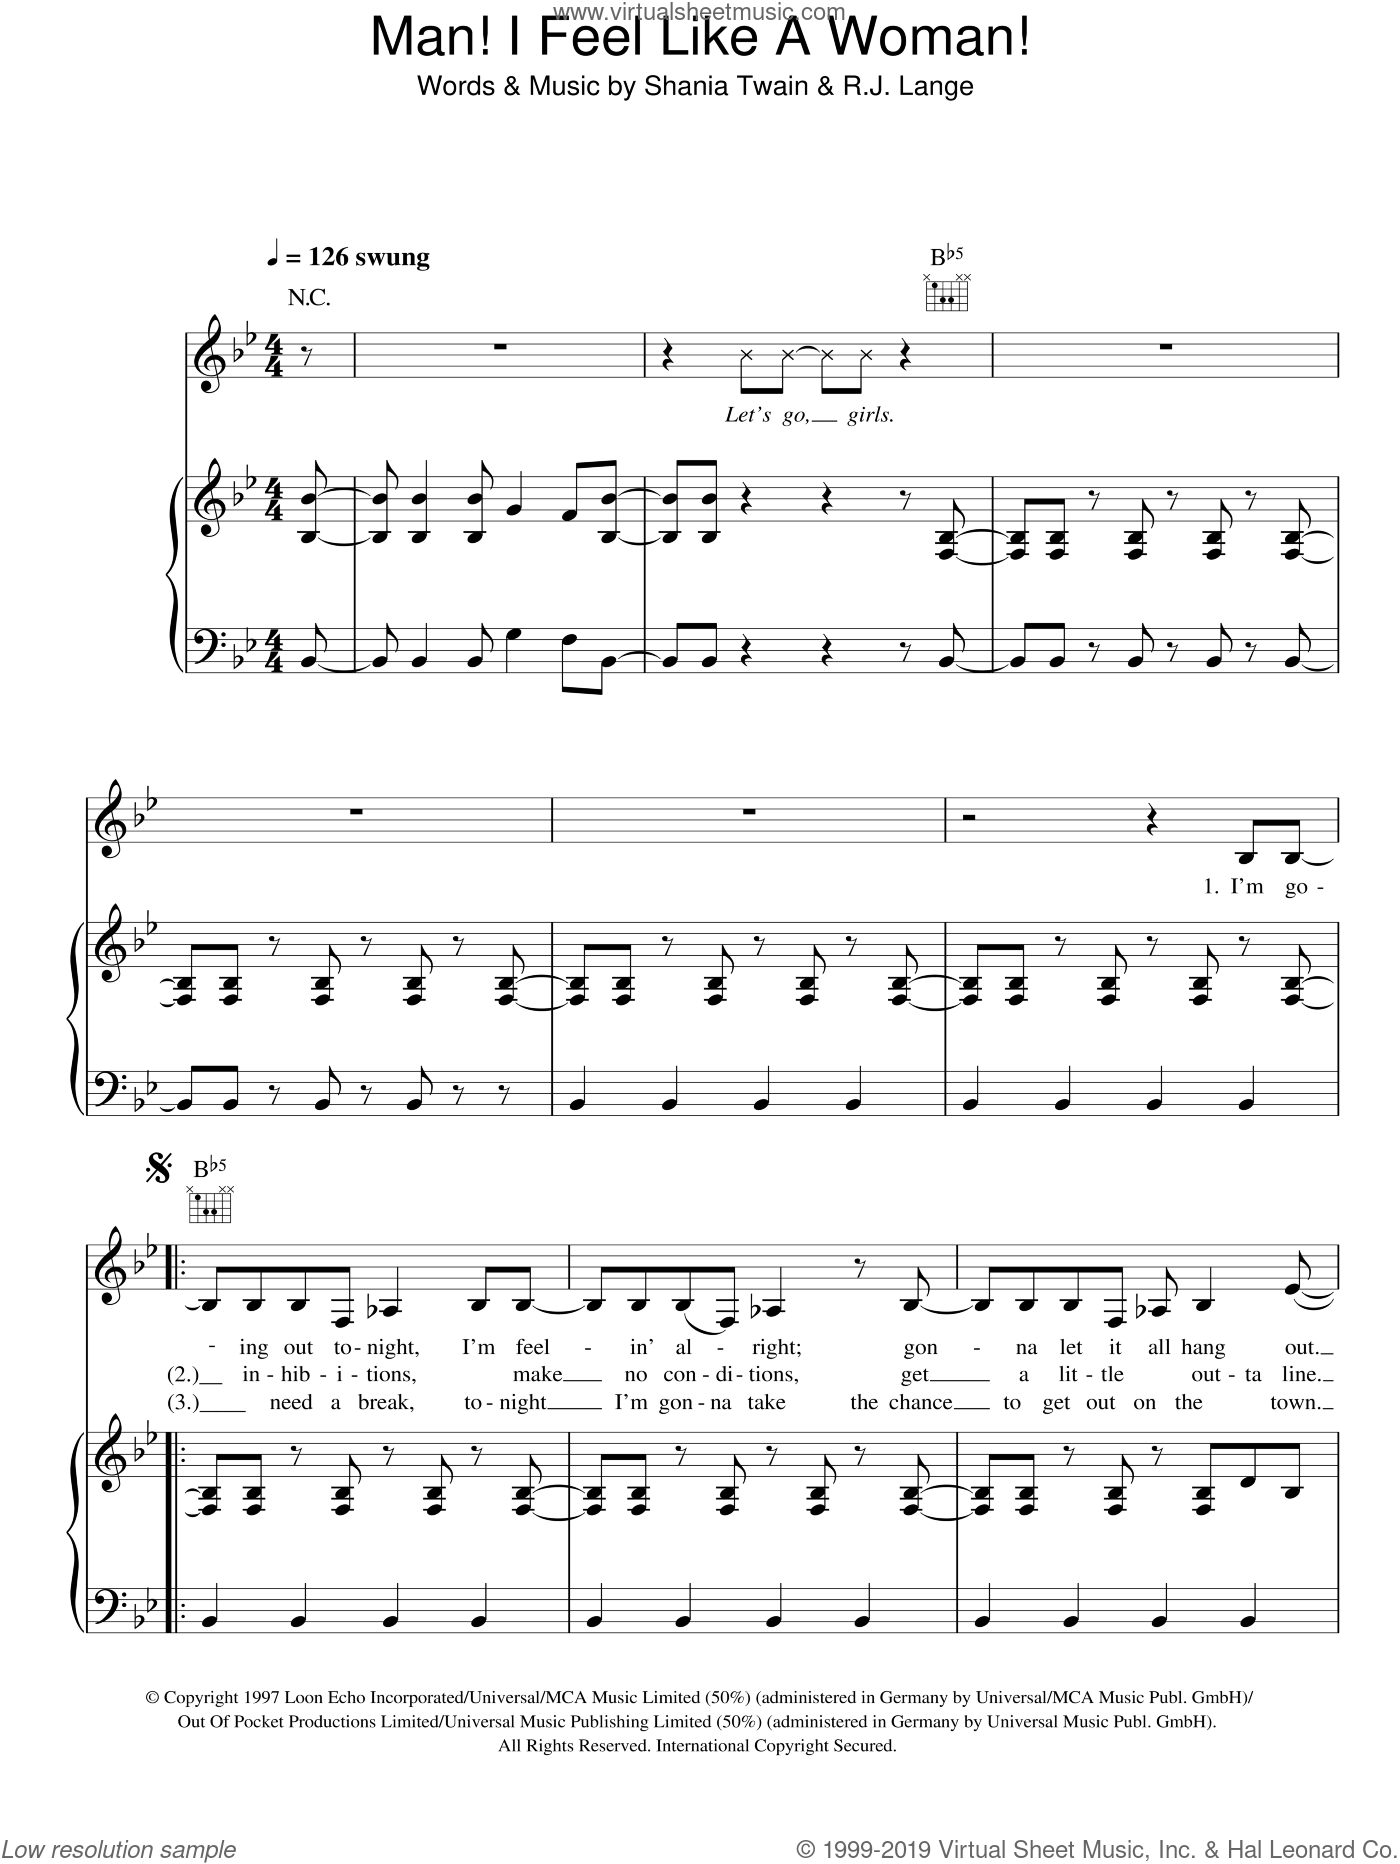 Man! I Feel Like A Woman! sheet music for voice, piano or guitar by Shania Twain and Robert John Lange, intermediate skill level